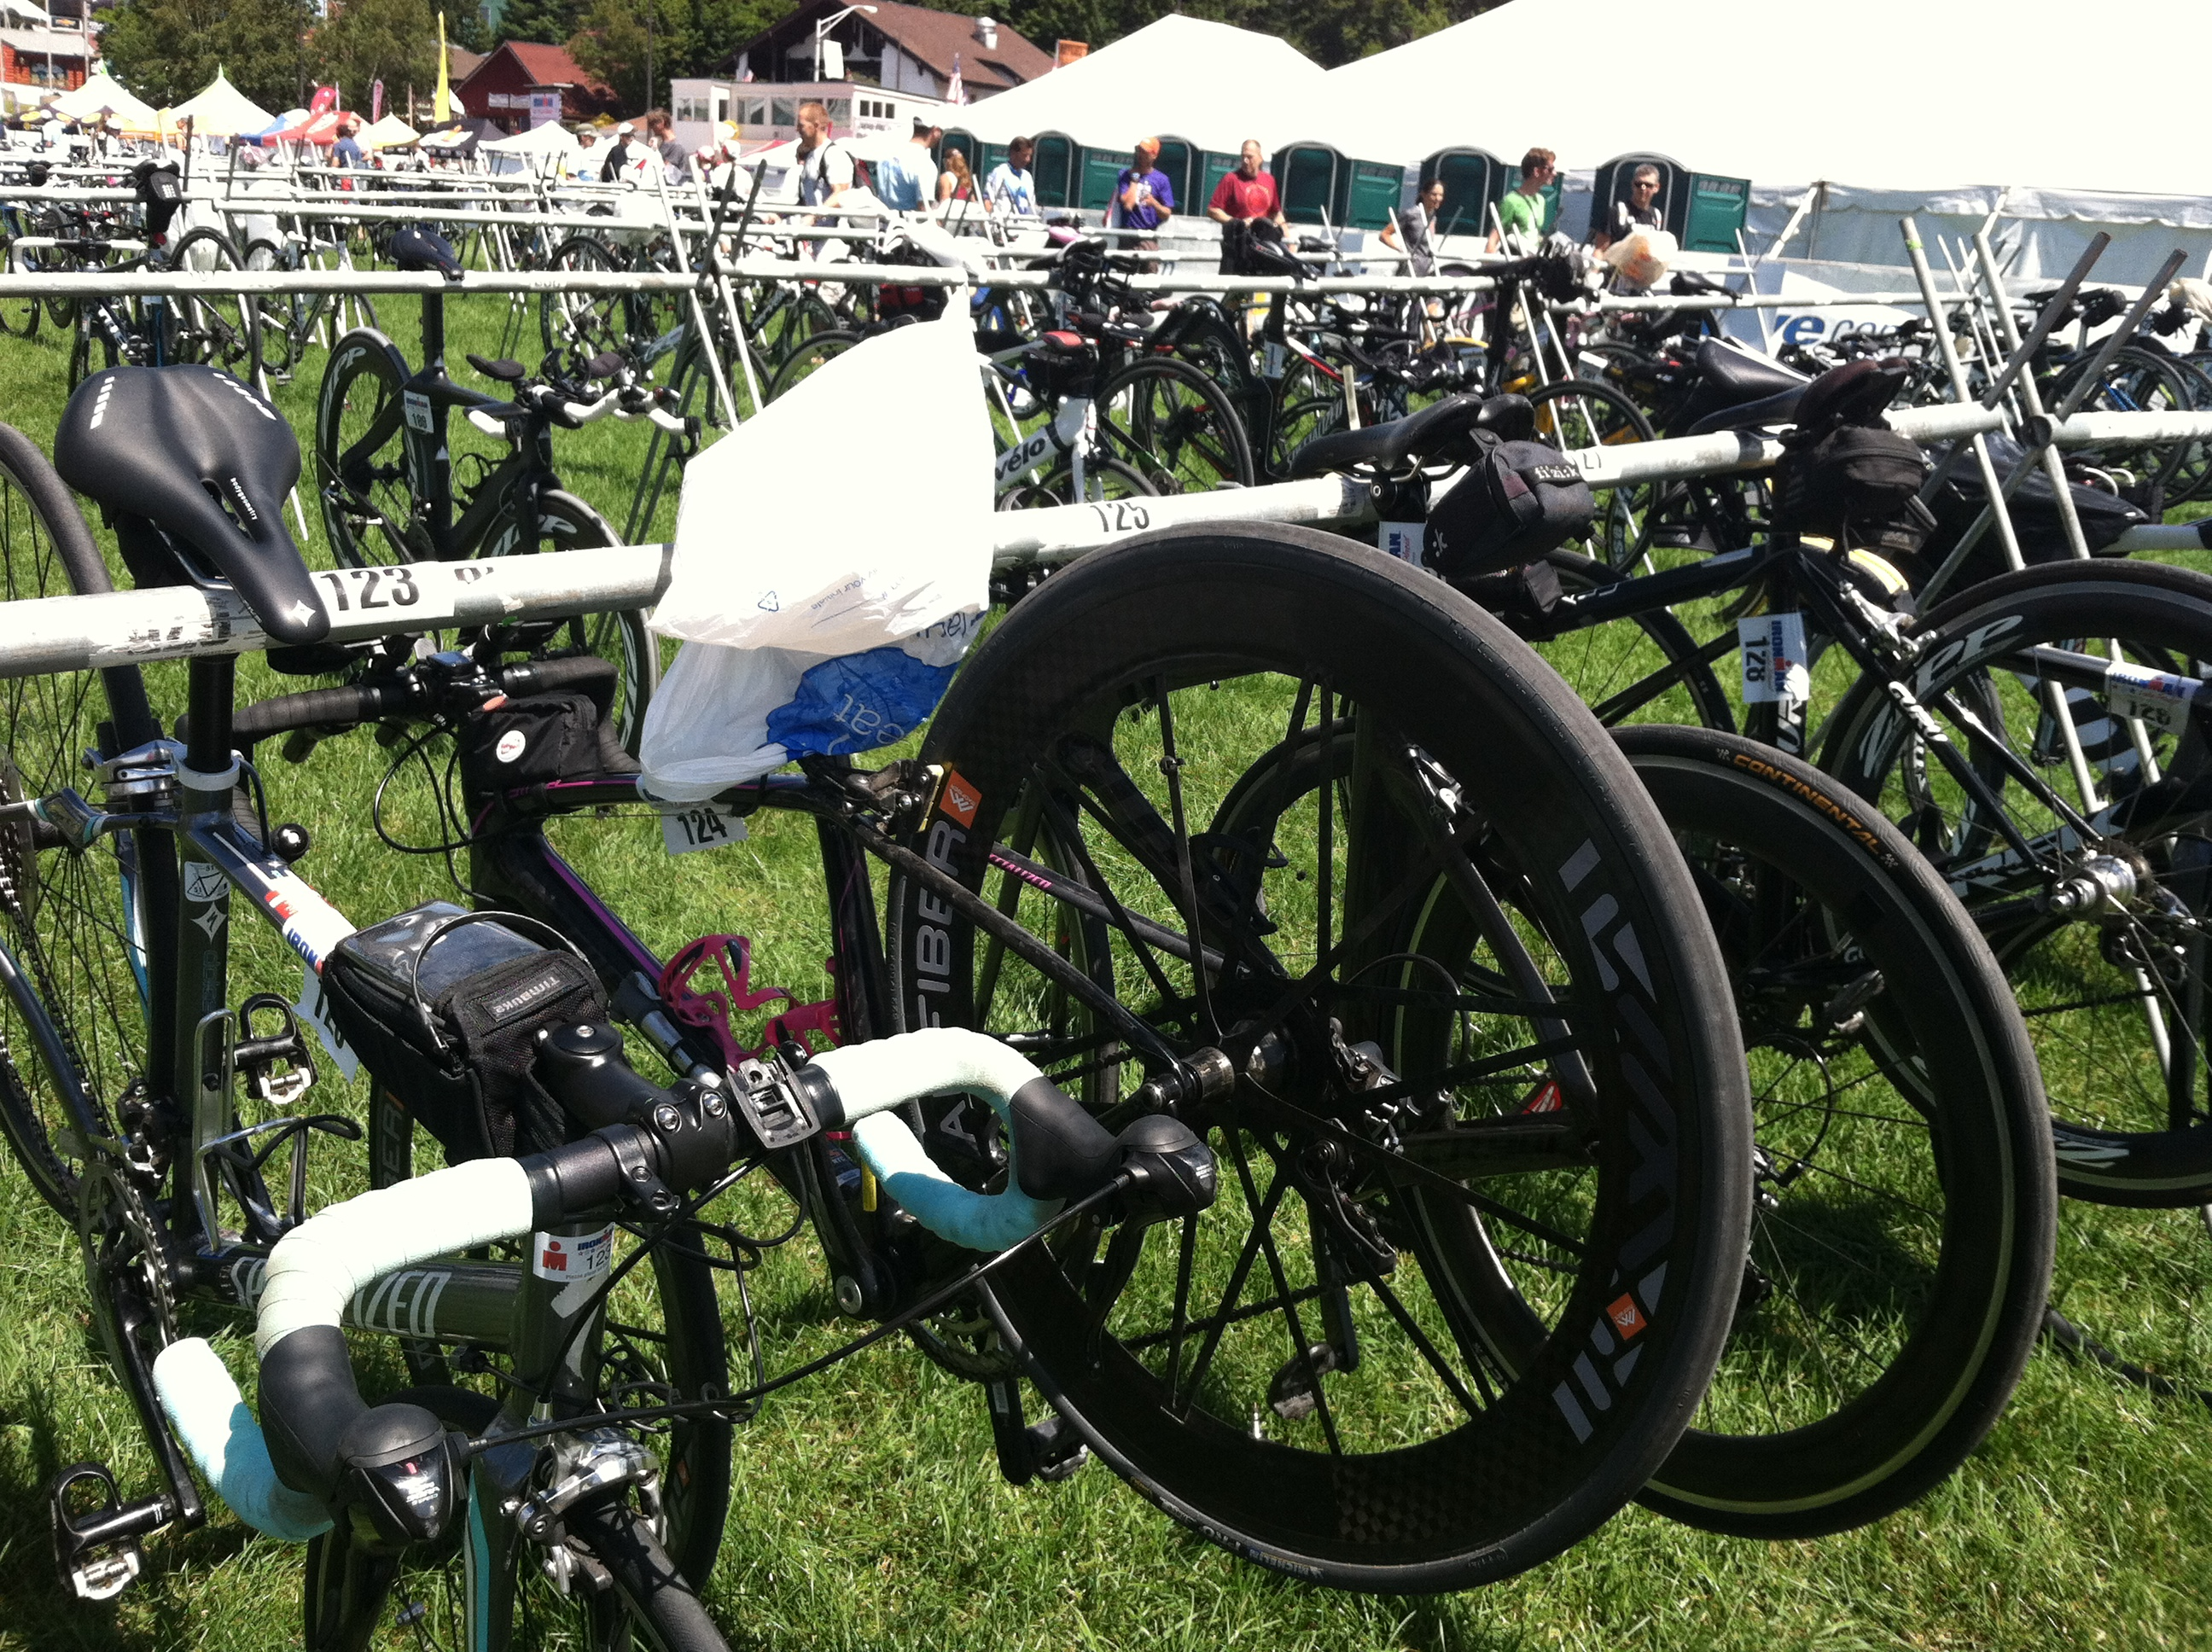 I literally laughed out loud when I saw Penelope amidst all the tri bikes with race wheels!